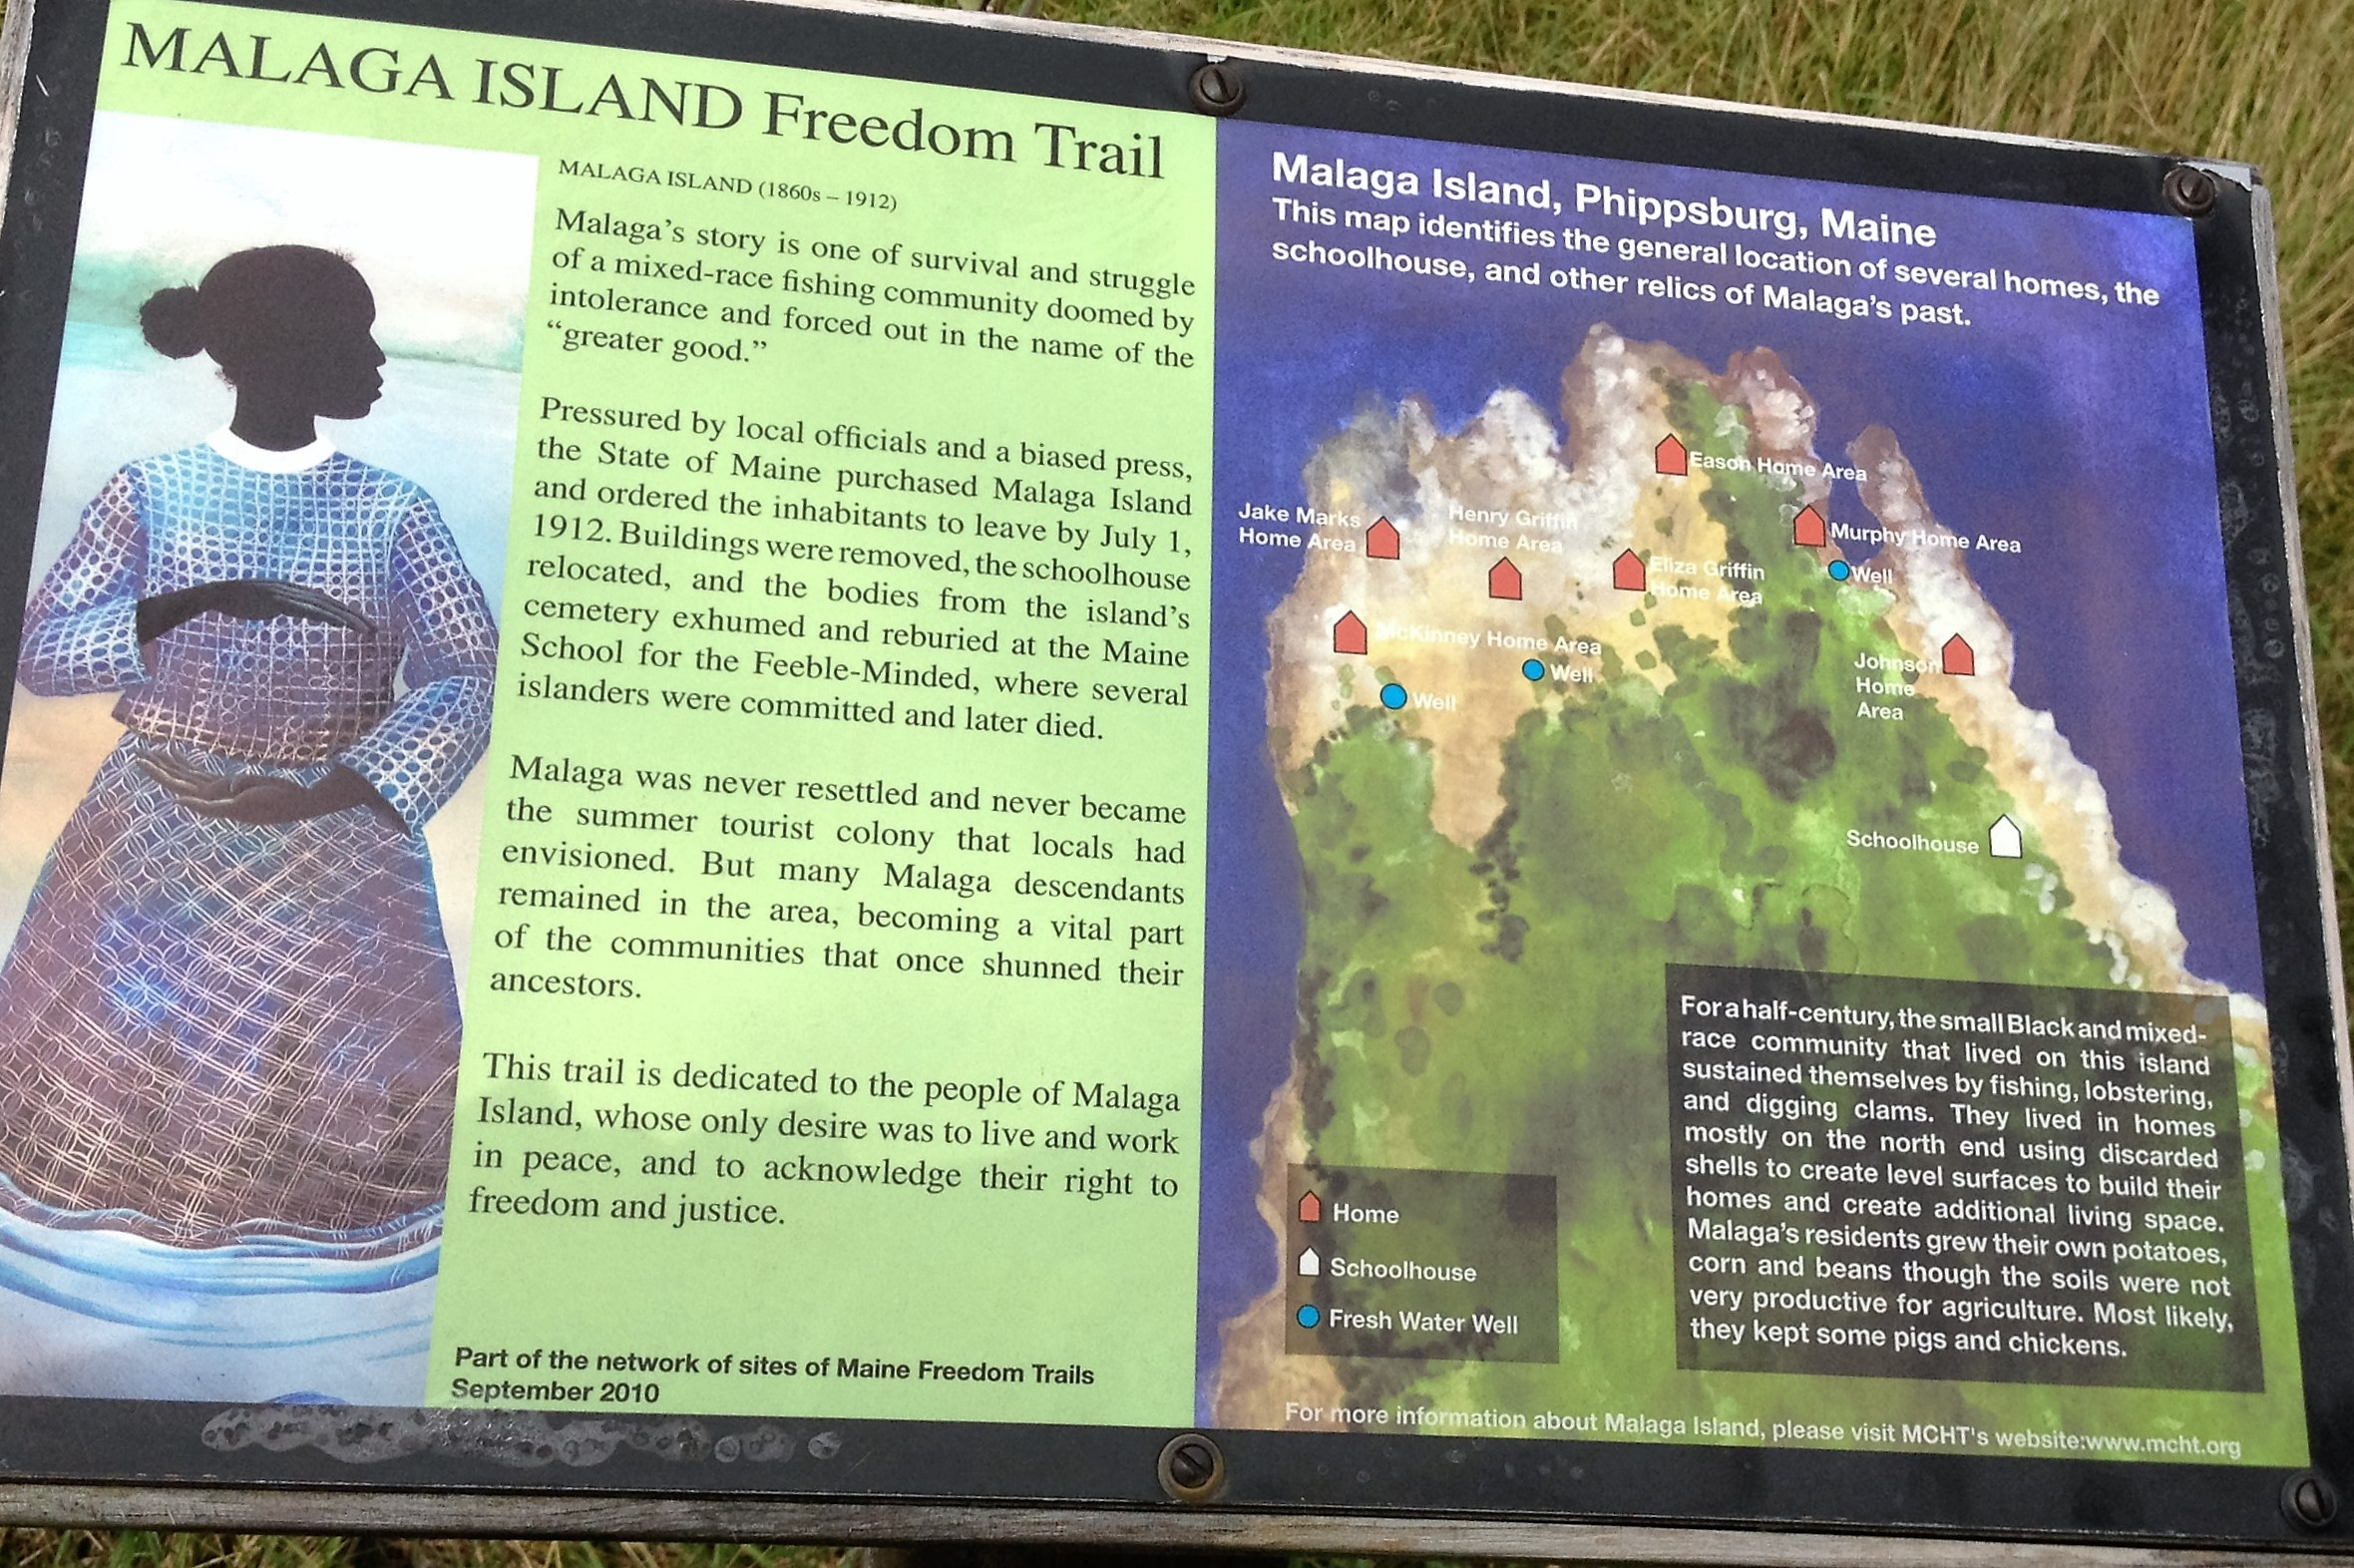 Malaga Island Freedom Trail Sign